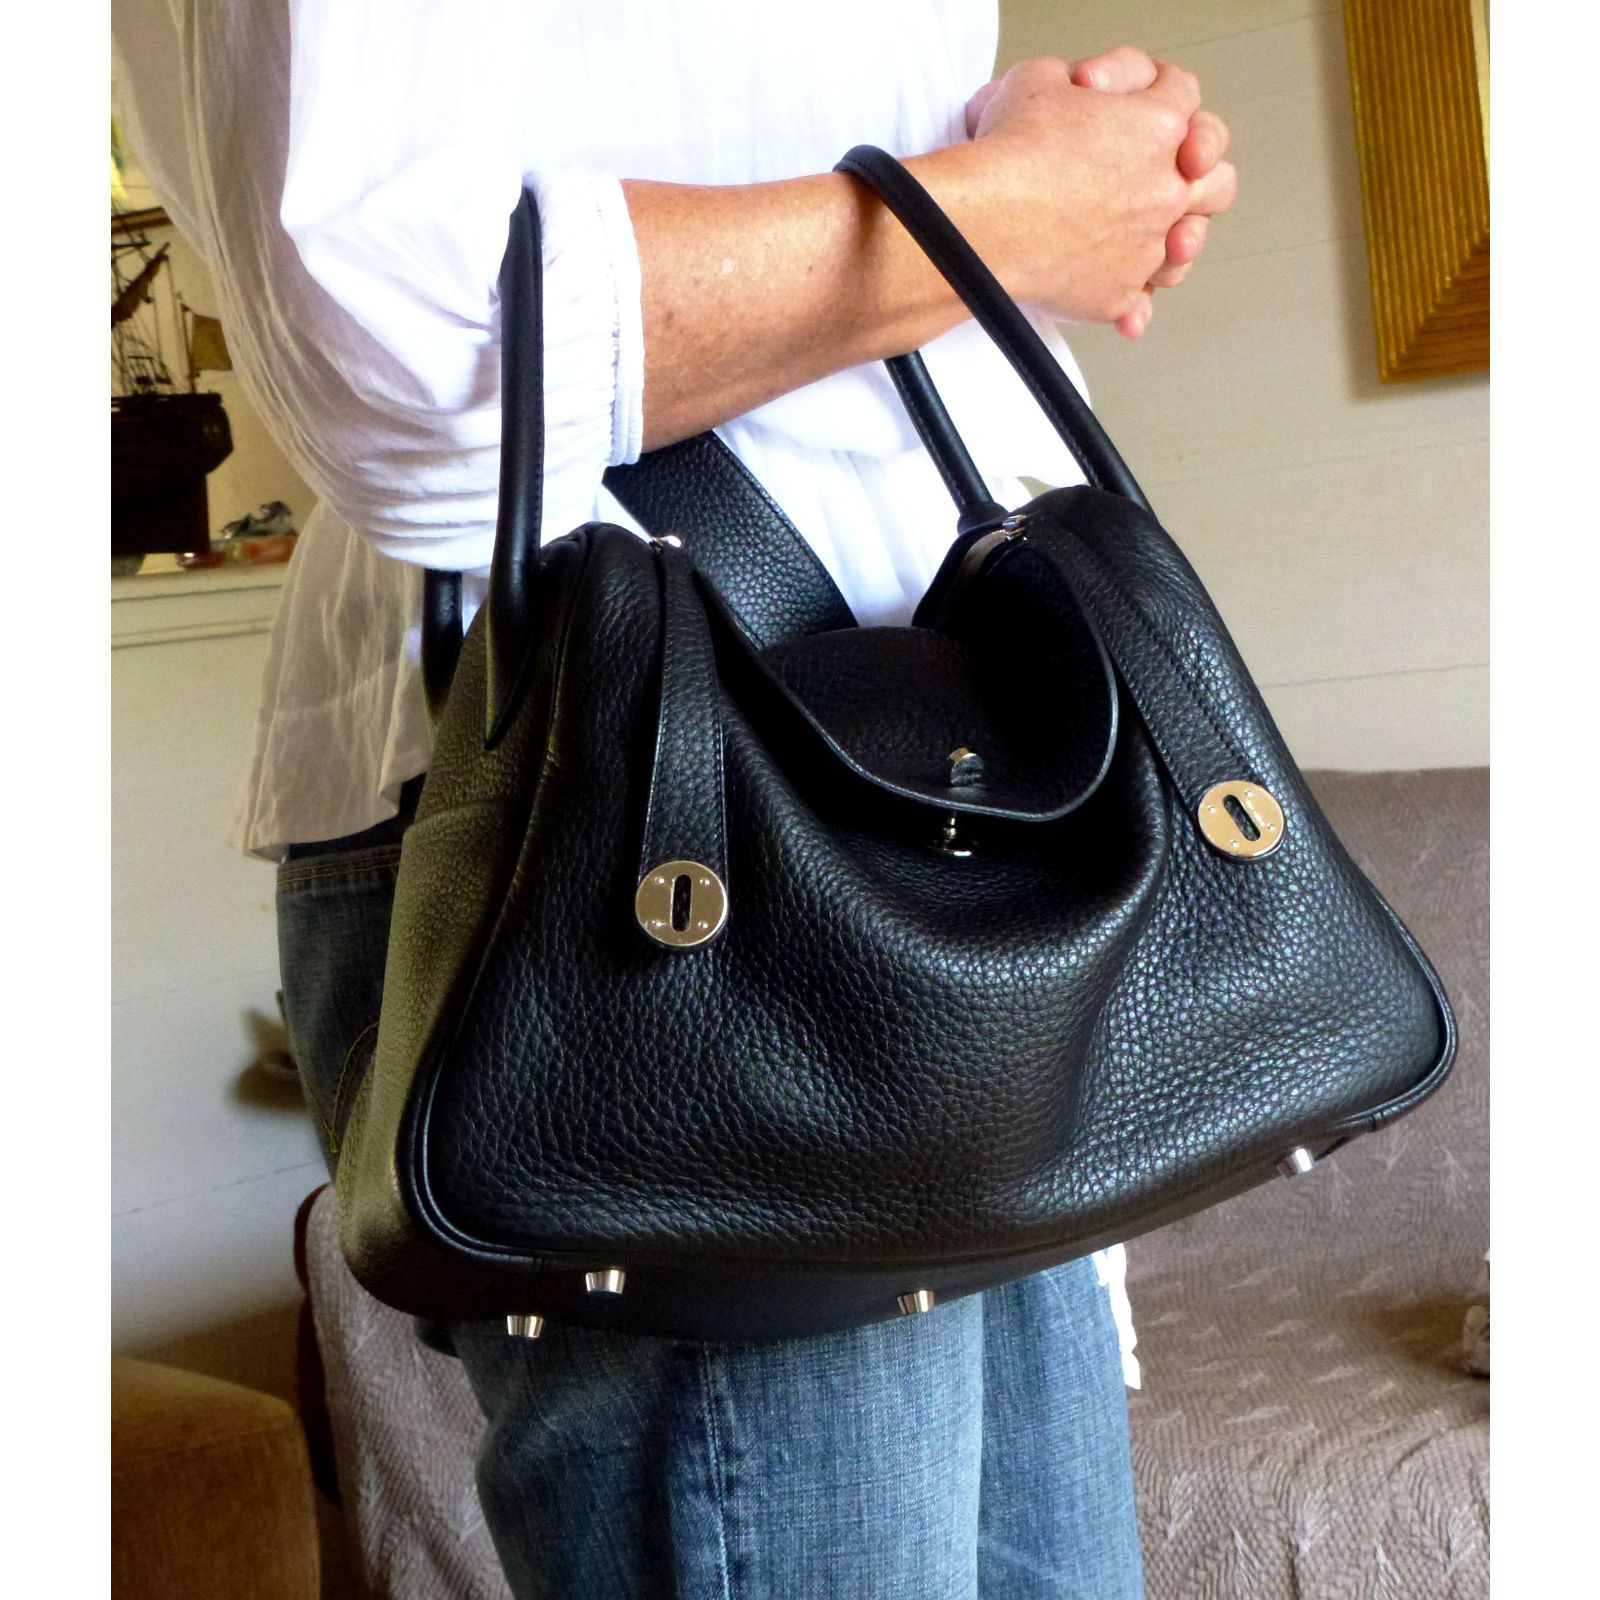 Hermes Lindy Handbag Bag Kelly Bags Birkin